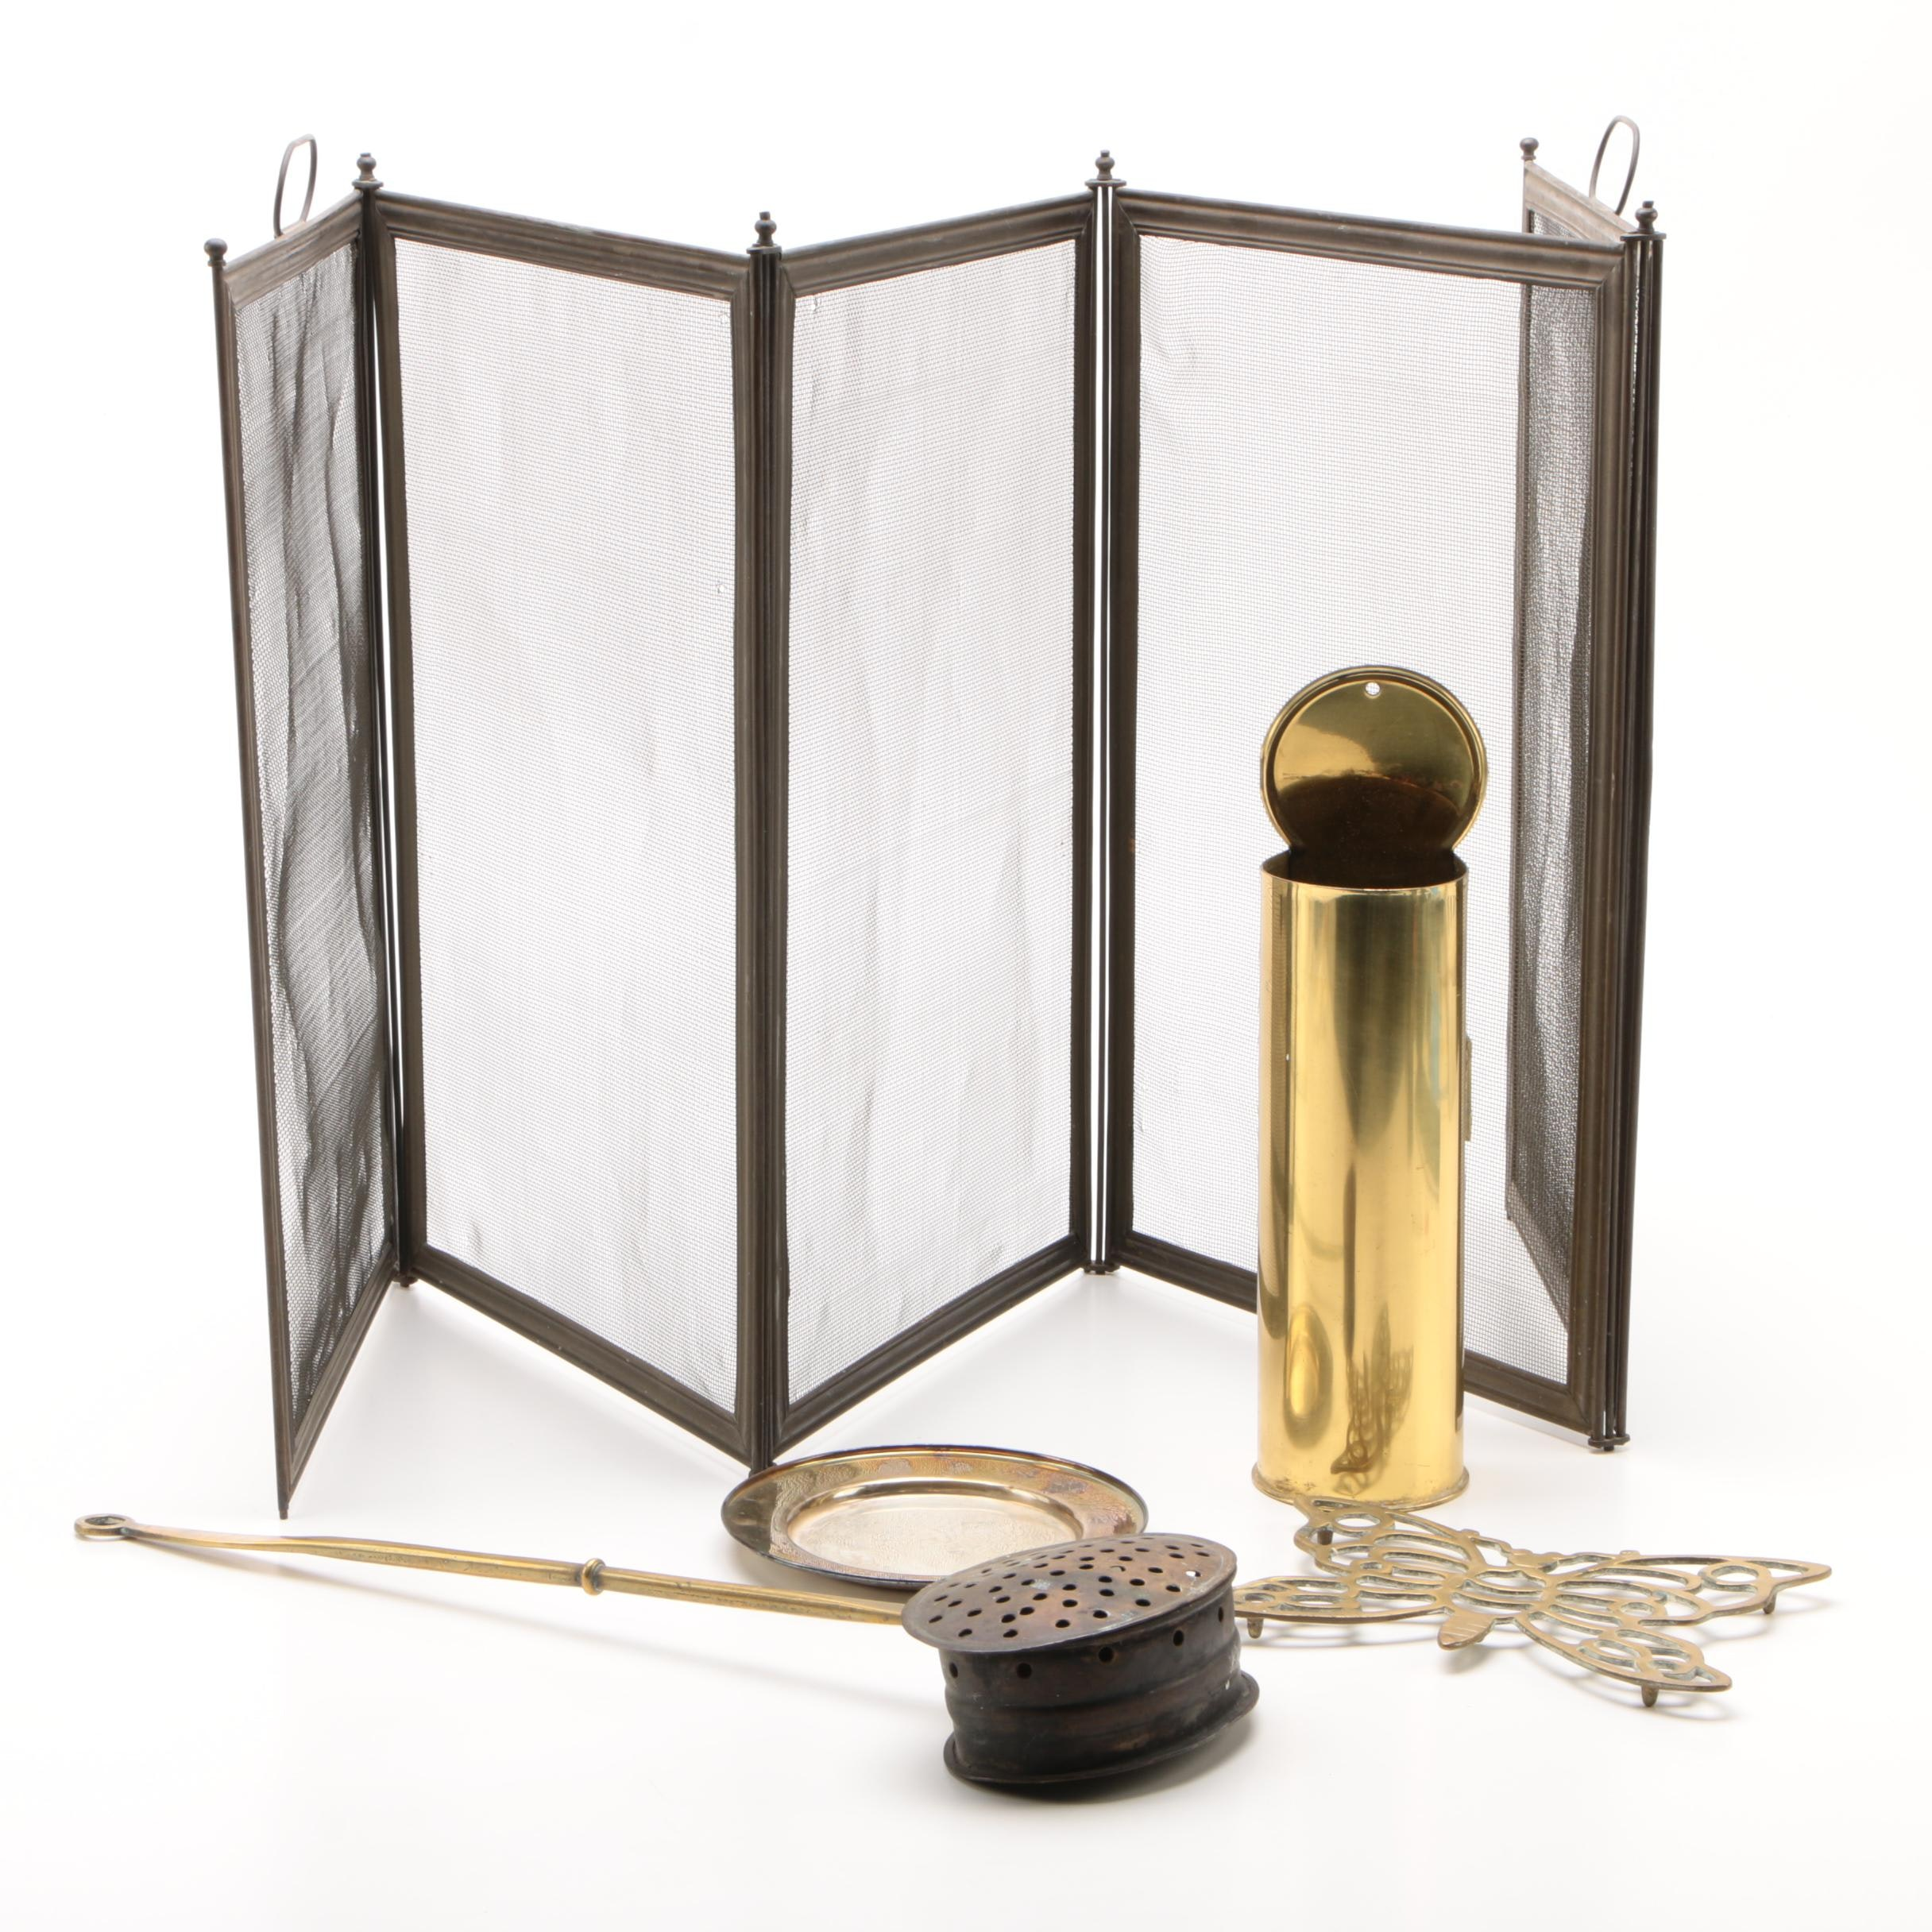 Brass and Metal Fireplace Accessories, Late 20th Century